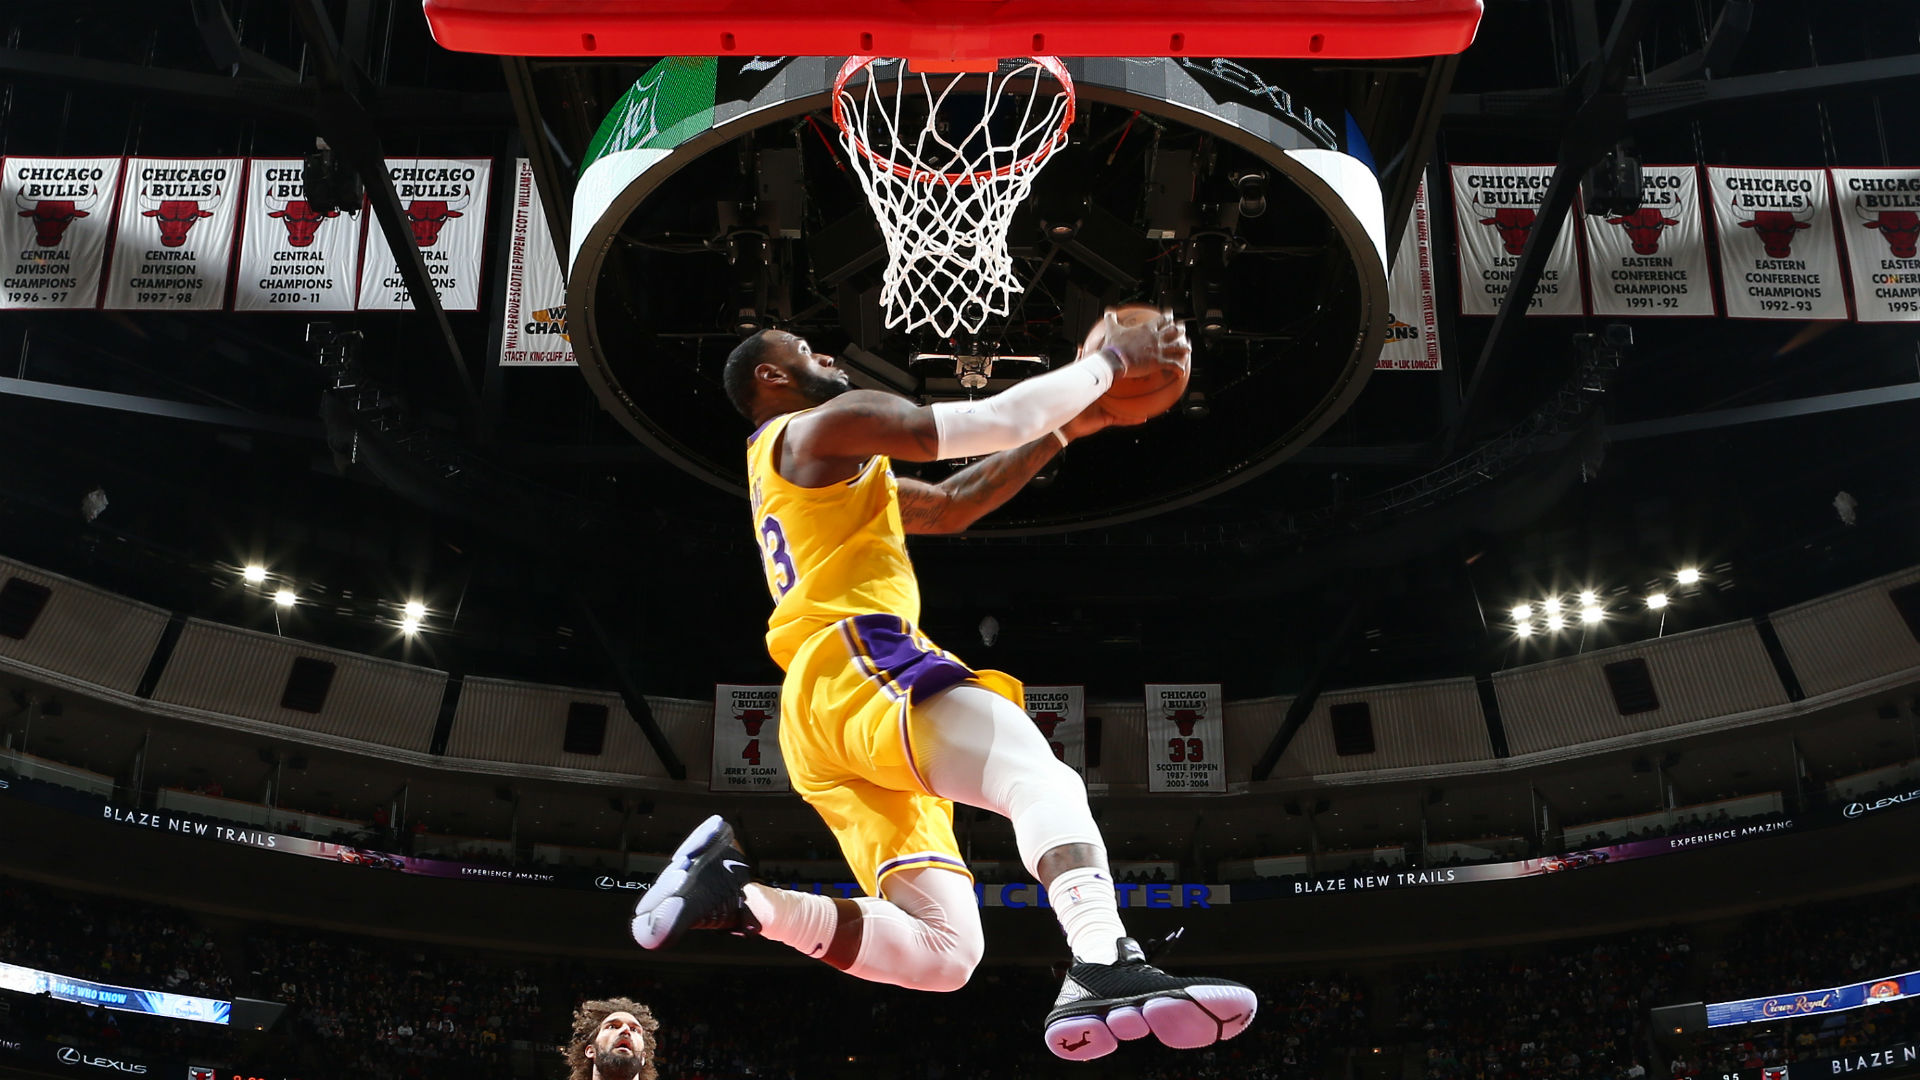 6a7d64c8f99 LeBron James steals the show with two big dunks in Lakers win over Bulls